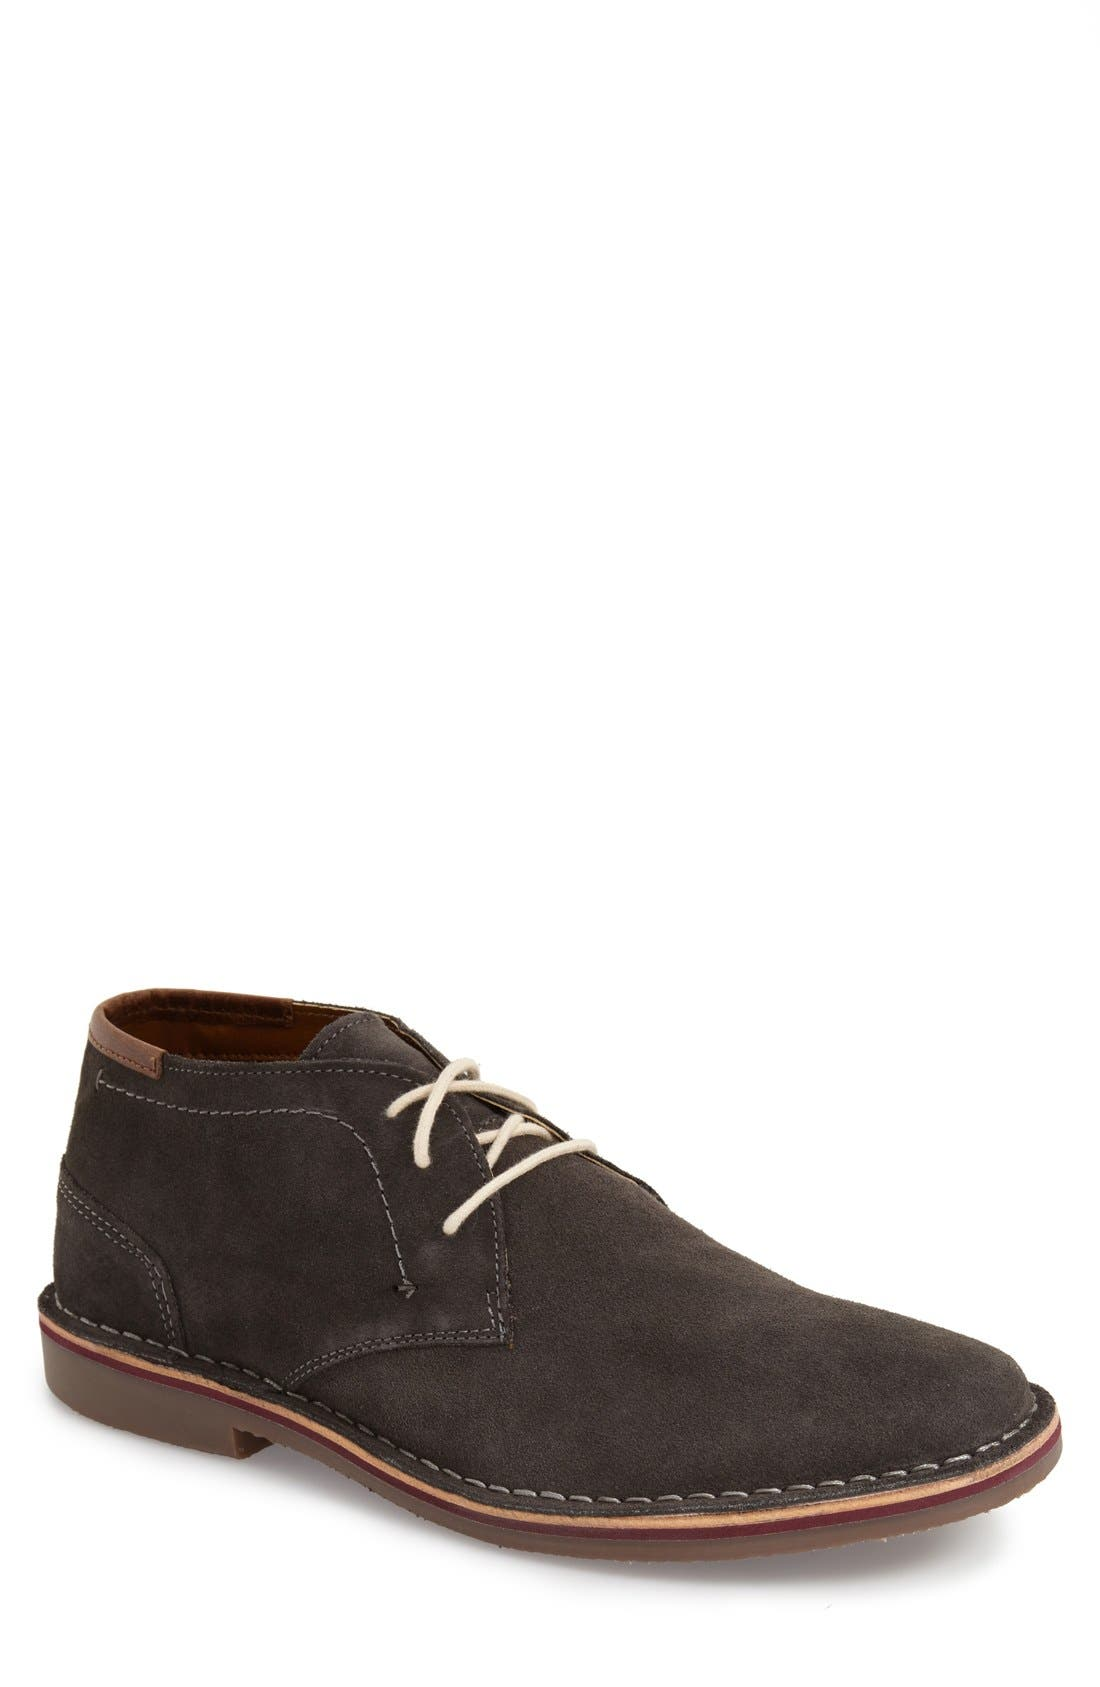 'Desert Sun' Chukka Boot,                             Main thumbnail 1, color,                             DARK GREY SUEDE